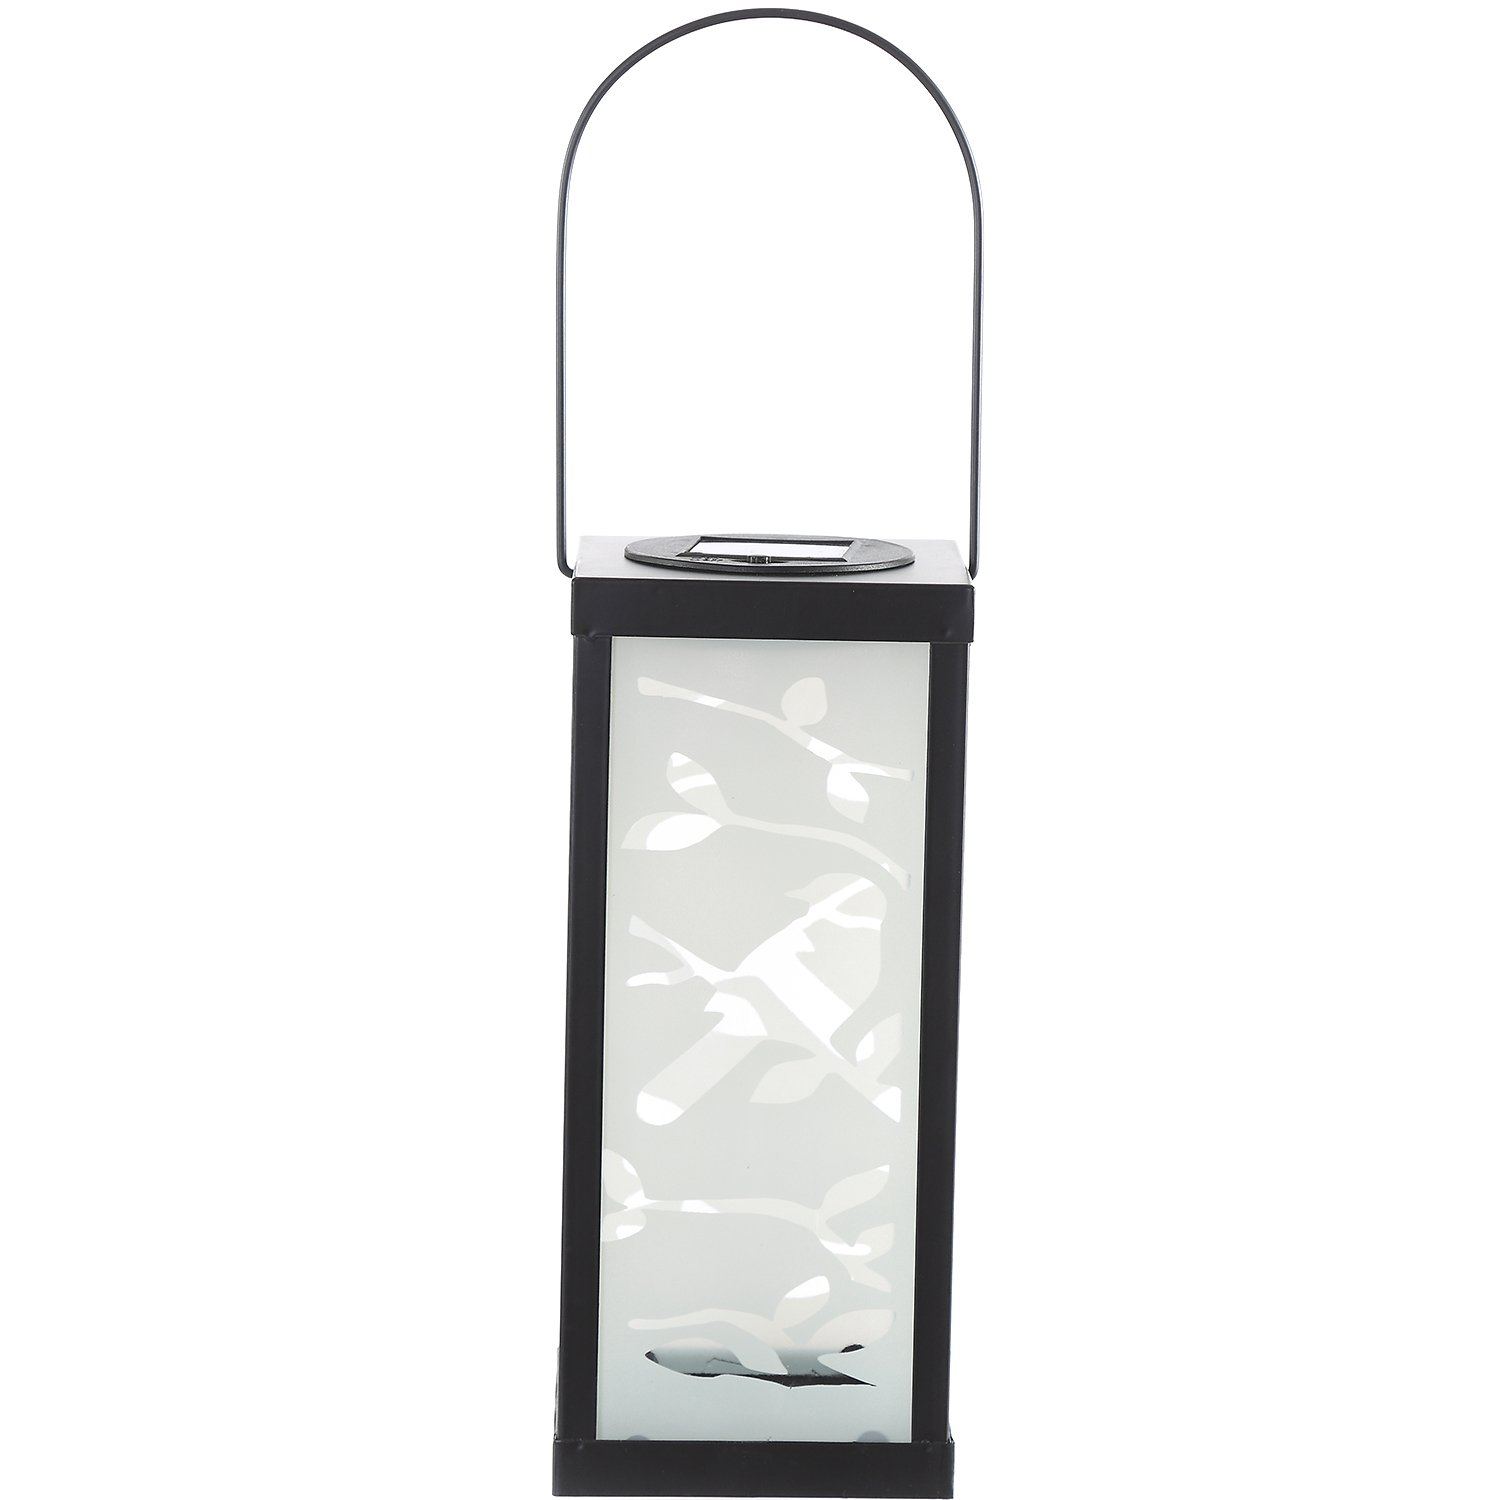 CEDAR HOME Solar Lantern Outdoor LED Light Portable Waterproof Frosted Metal Glass Hanging Lamp with Hanger, 4.5''W x 4.5''D x 11''H, Bird